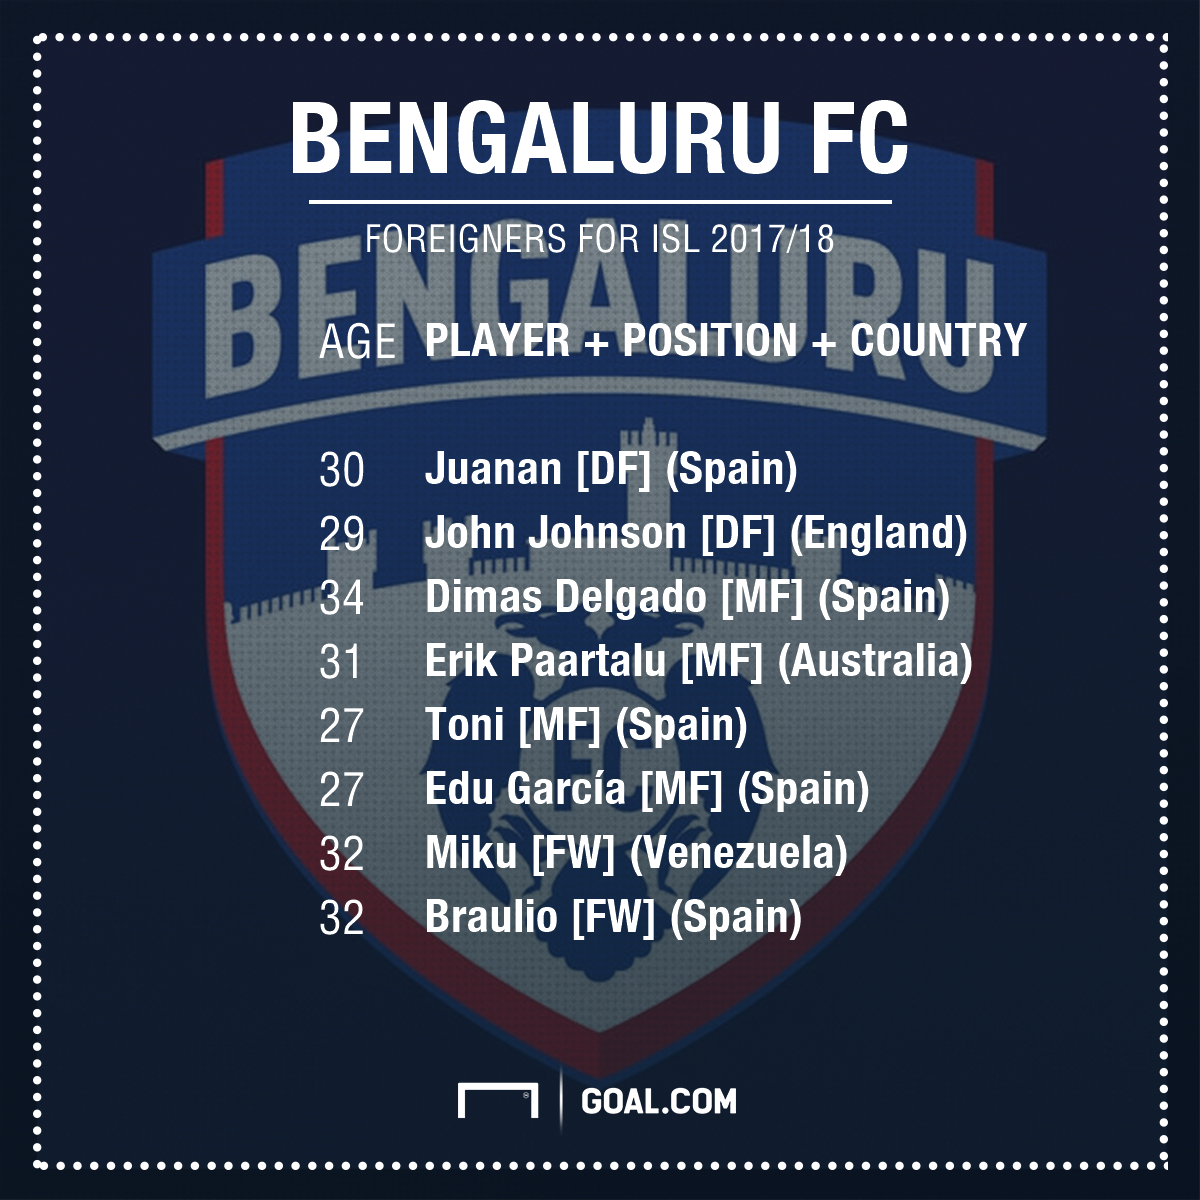 Bengaluru FC foreign clan